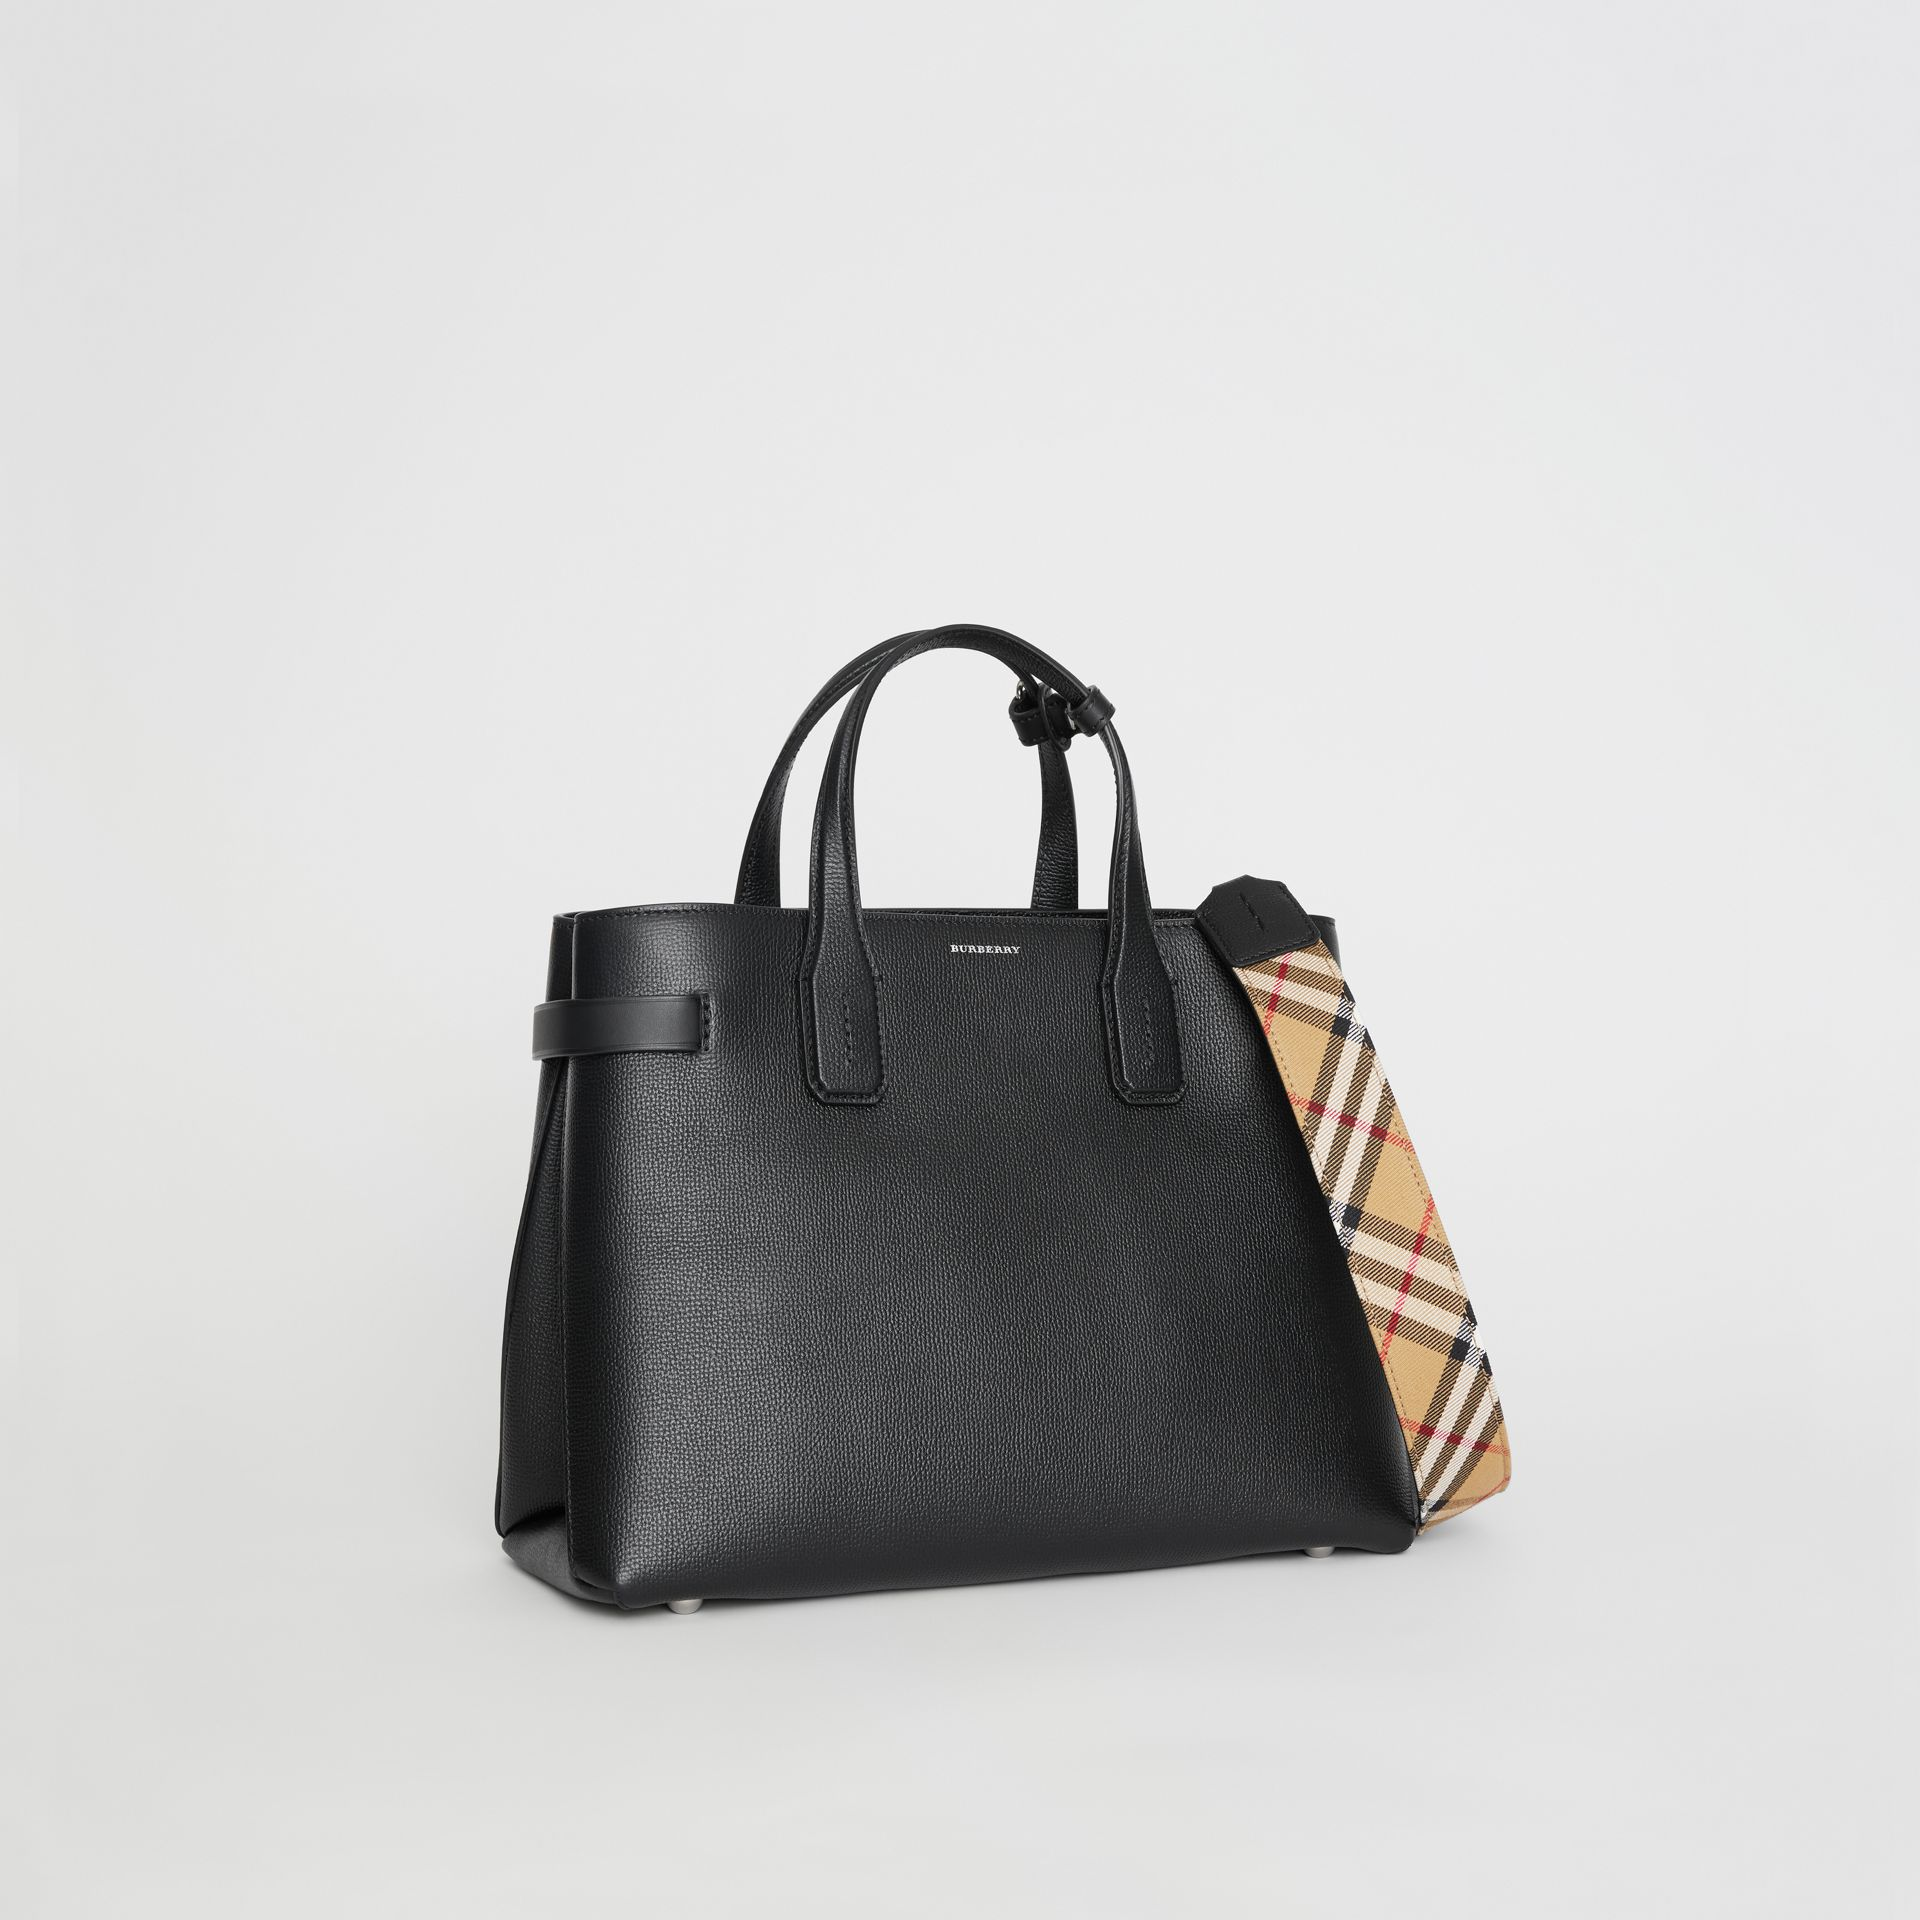 Sac The Banner moyen en cuir et motif Vintage check (Noir) - Femme | Burberry - photo de la galerie 6